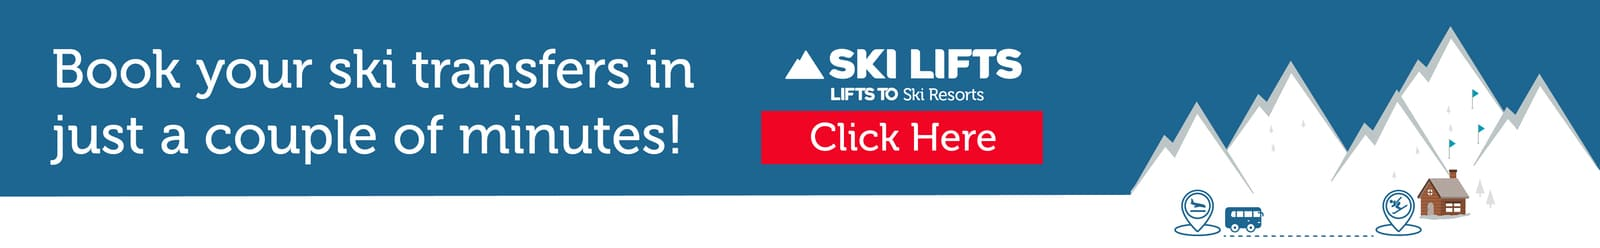 Book your ski transfers in just a couple of minutes - airport transfers offered by Ski Lifts